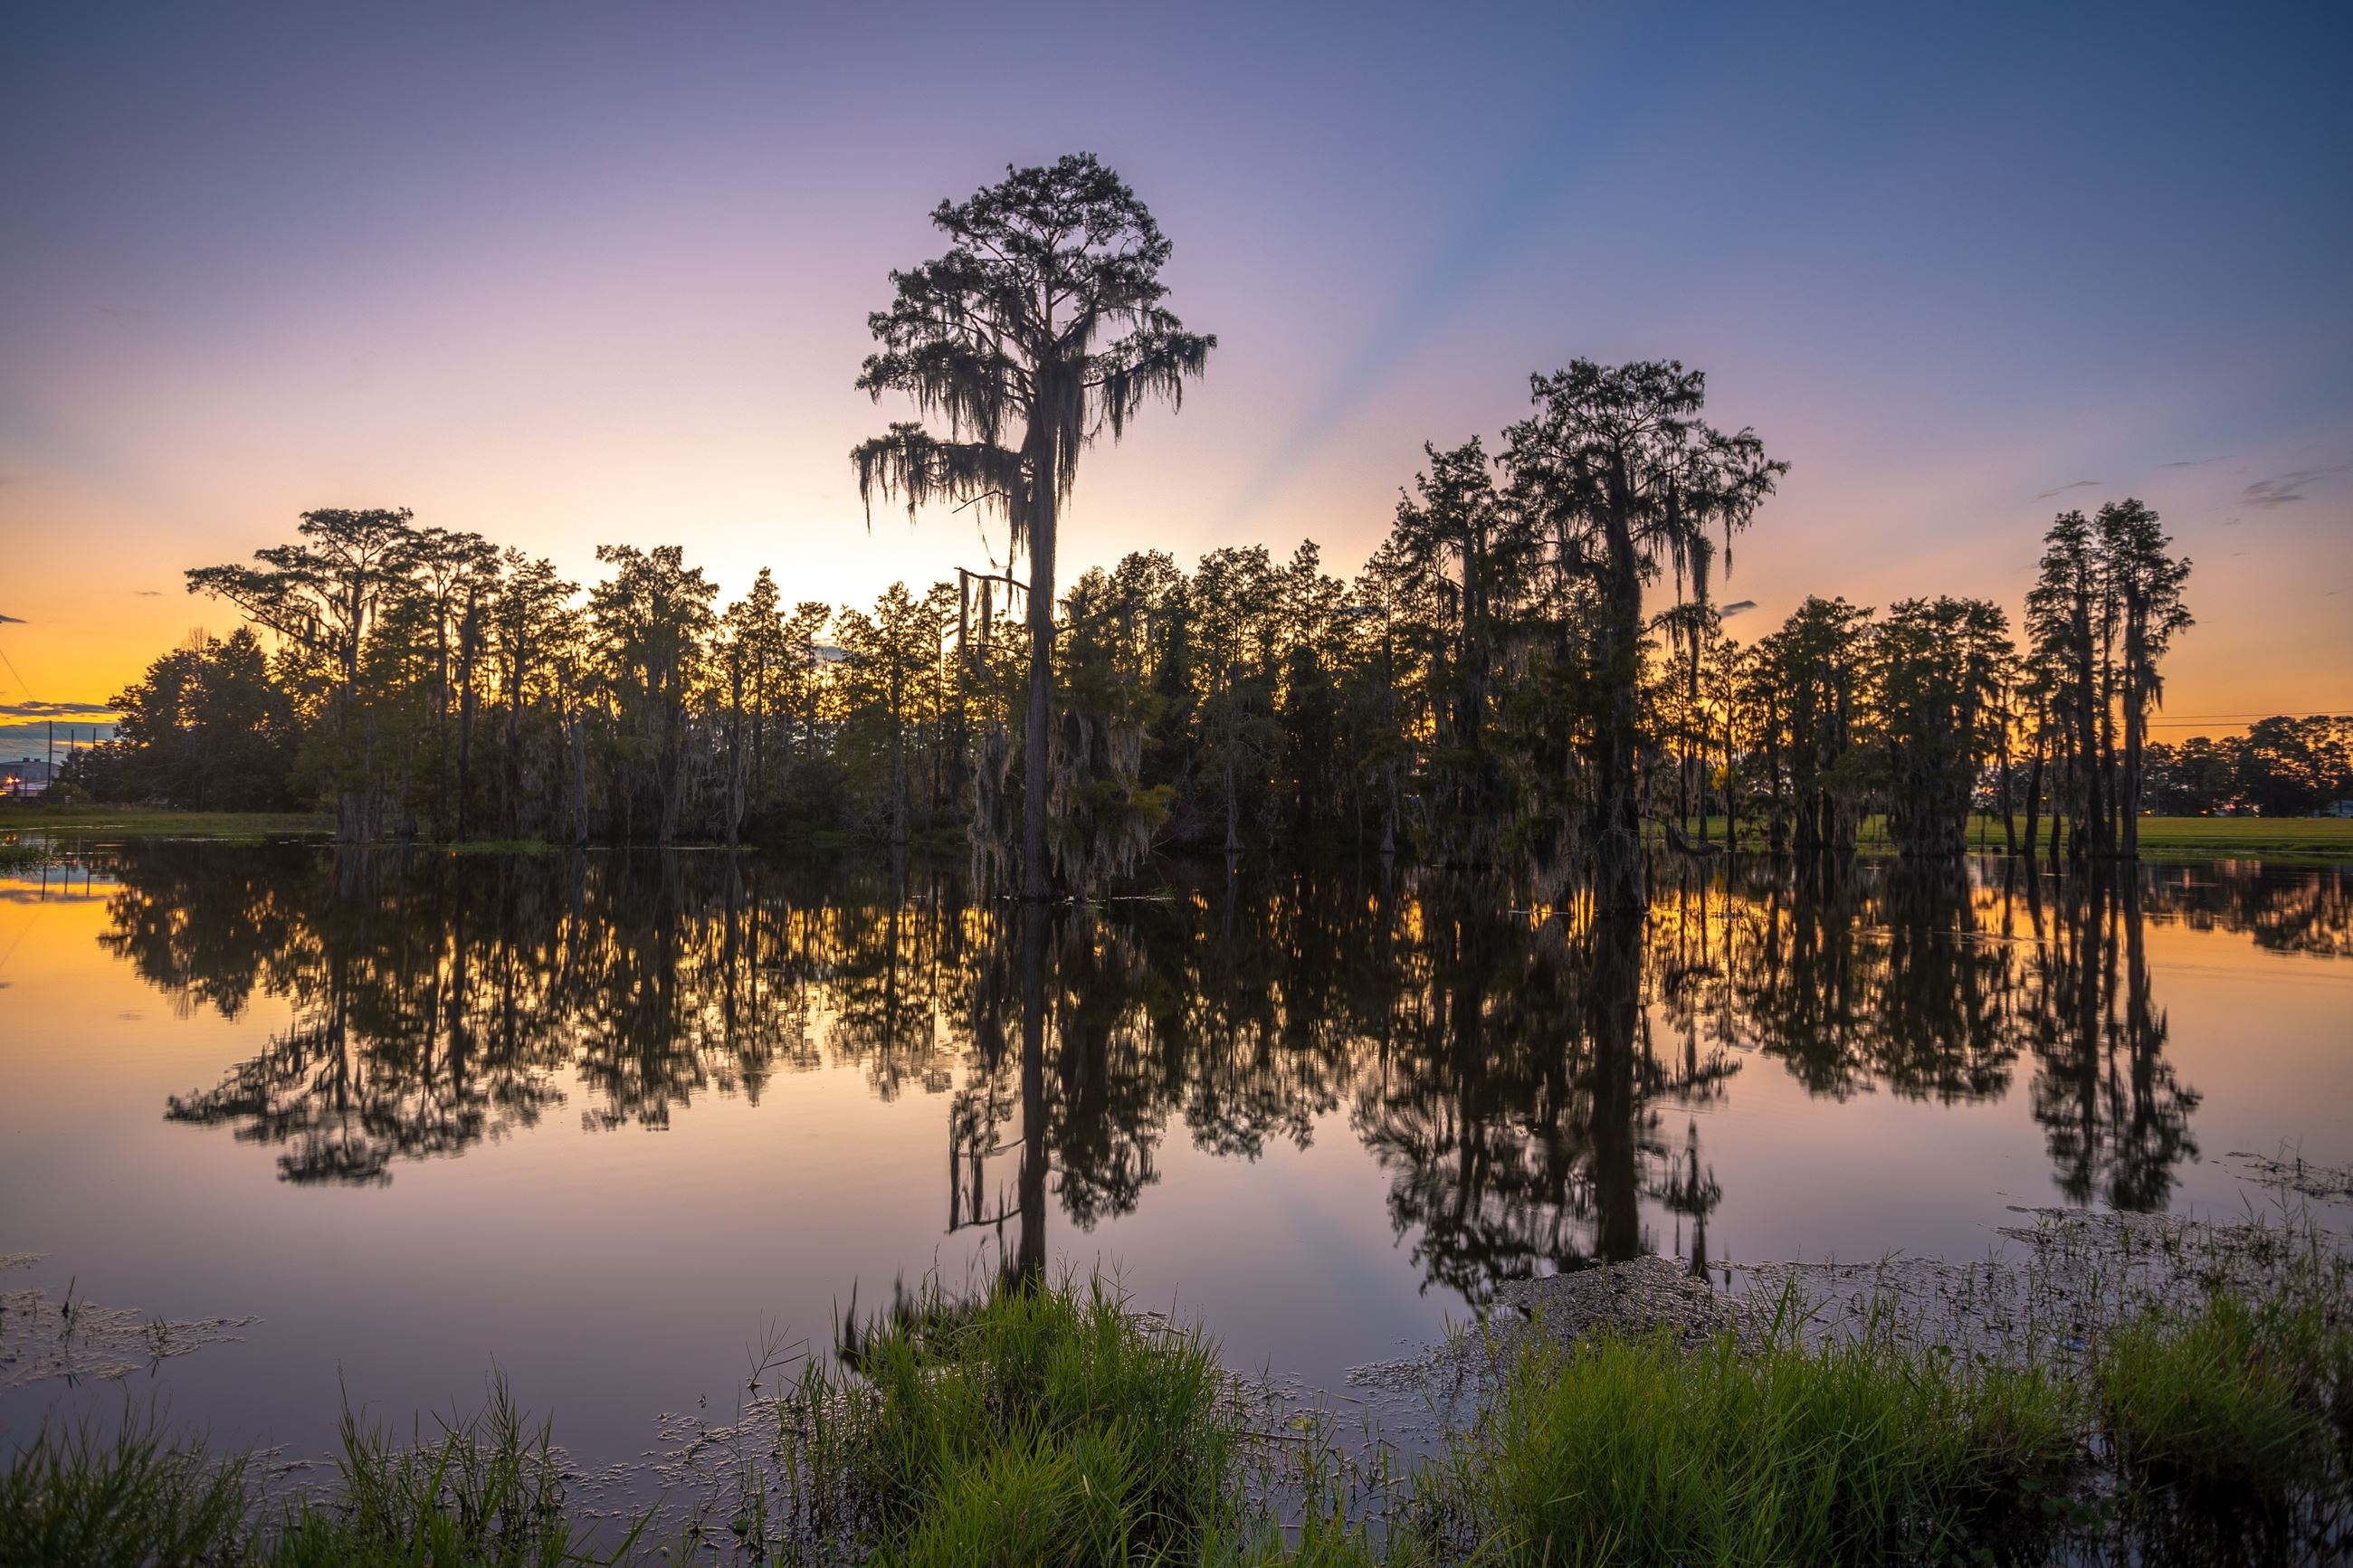 An image of a pretty pond surrounded by grass and filled with cypress trees.